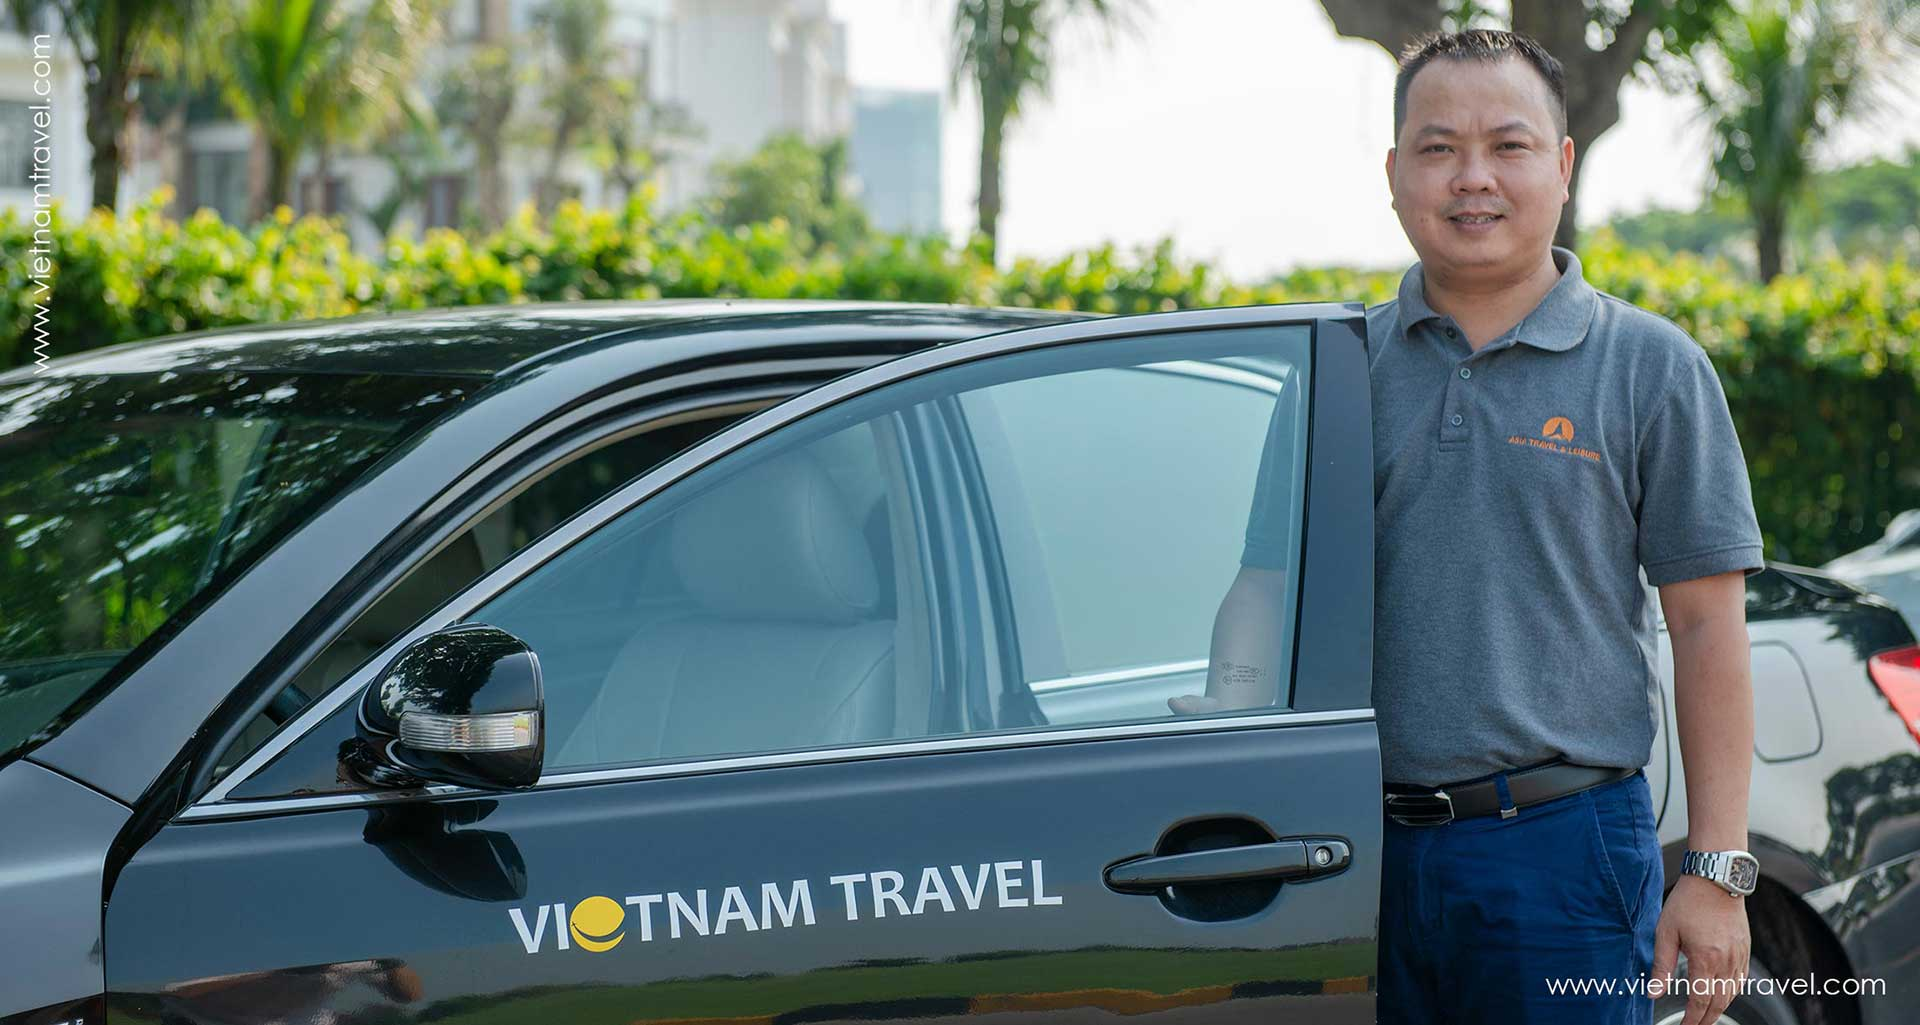 Vietnam Travel provides private airport transfer in Danang